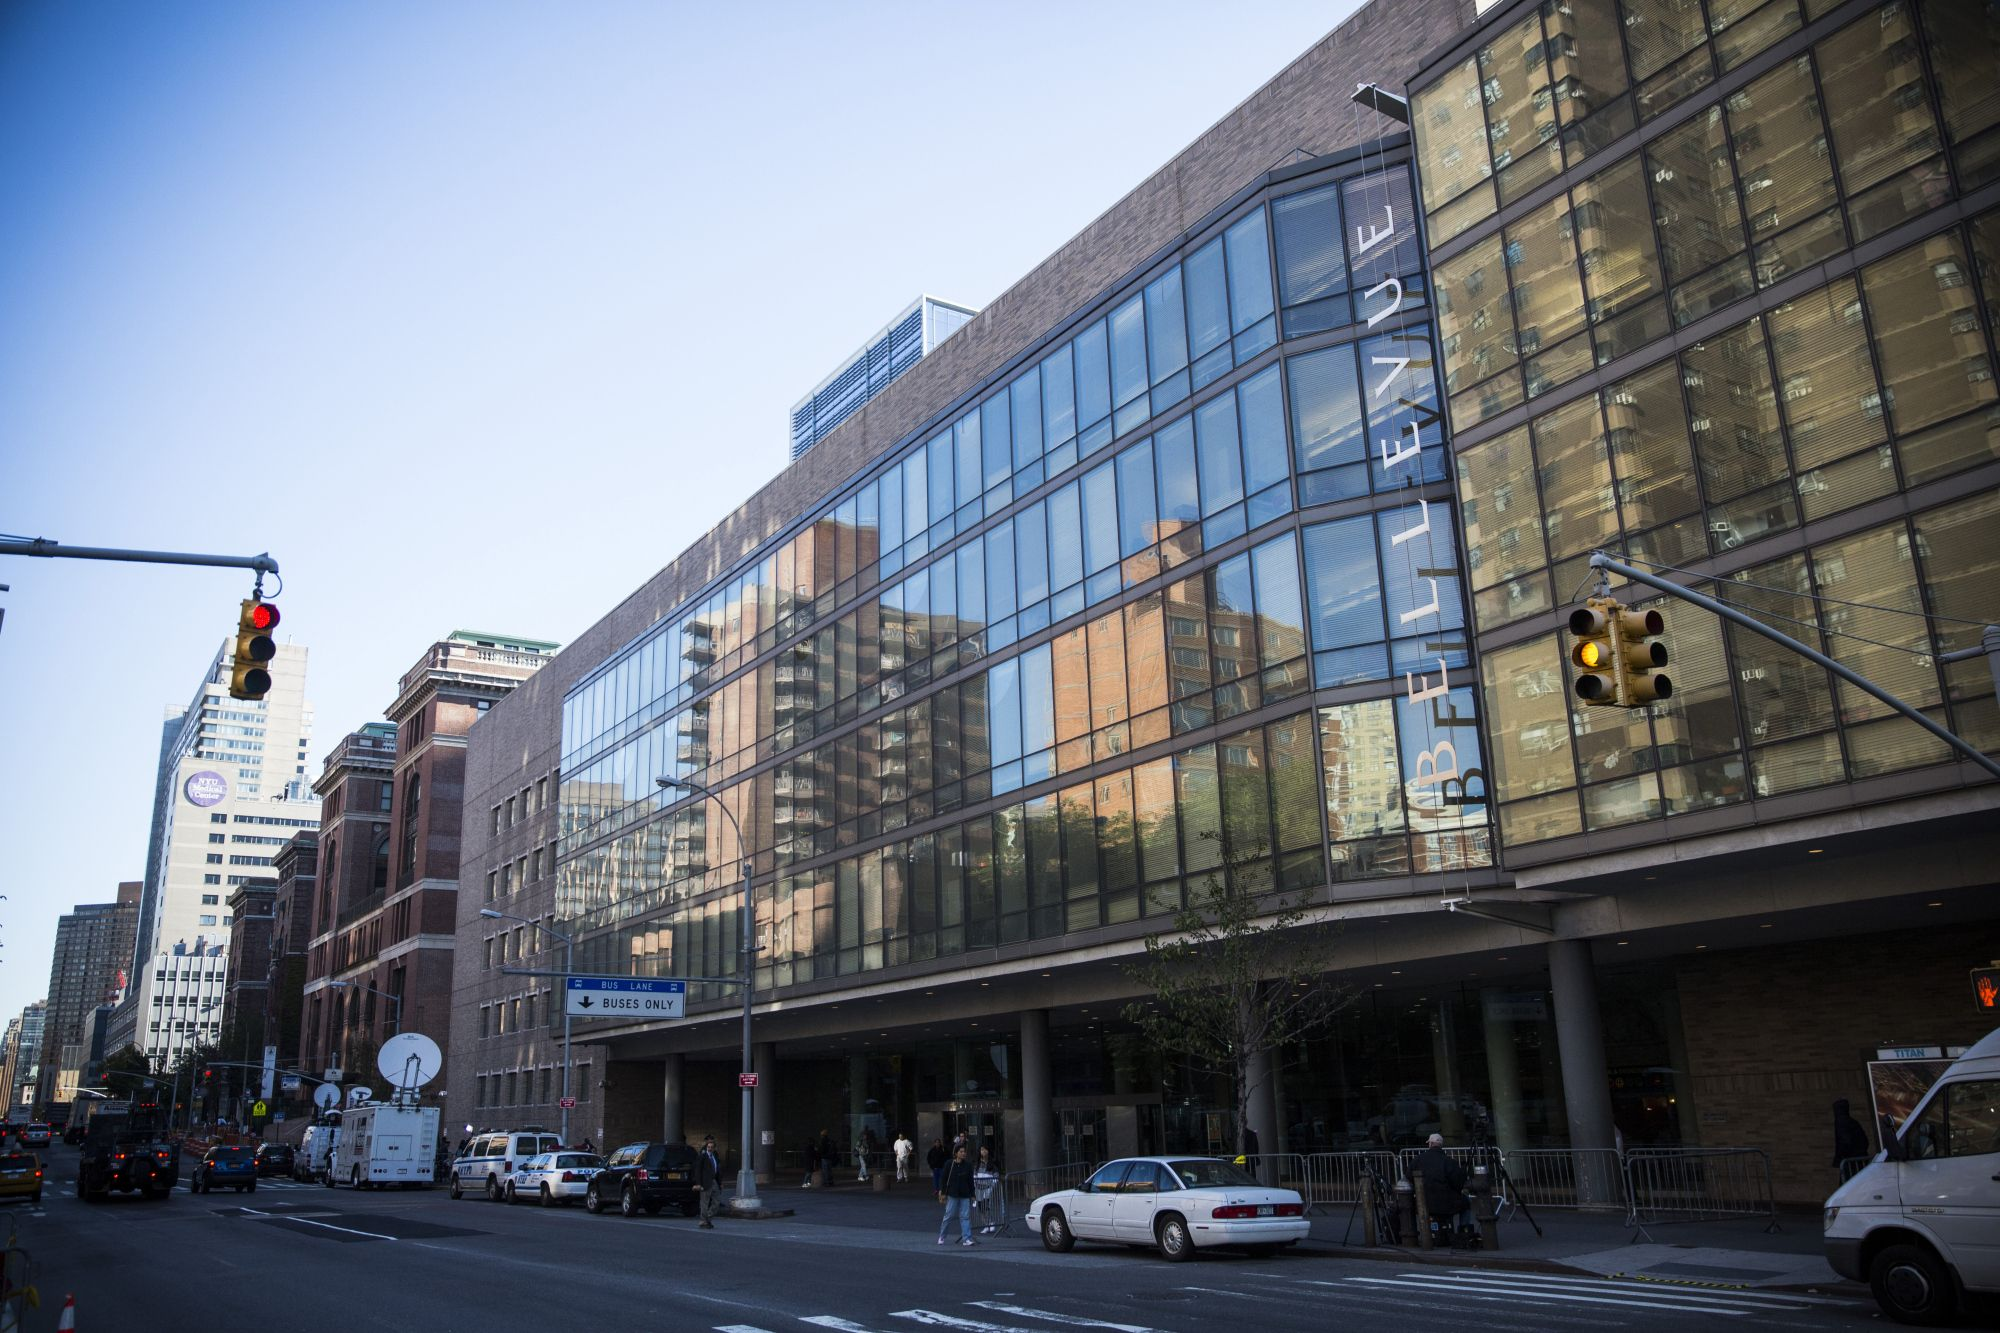 Bellevue transfers icu patients to nyu langone over ebola